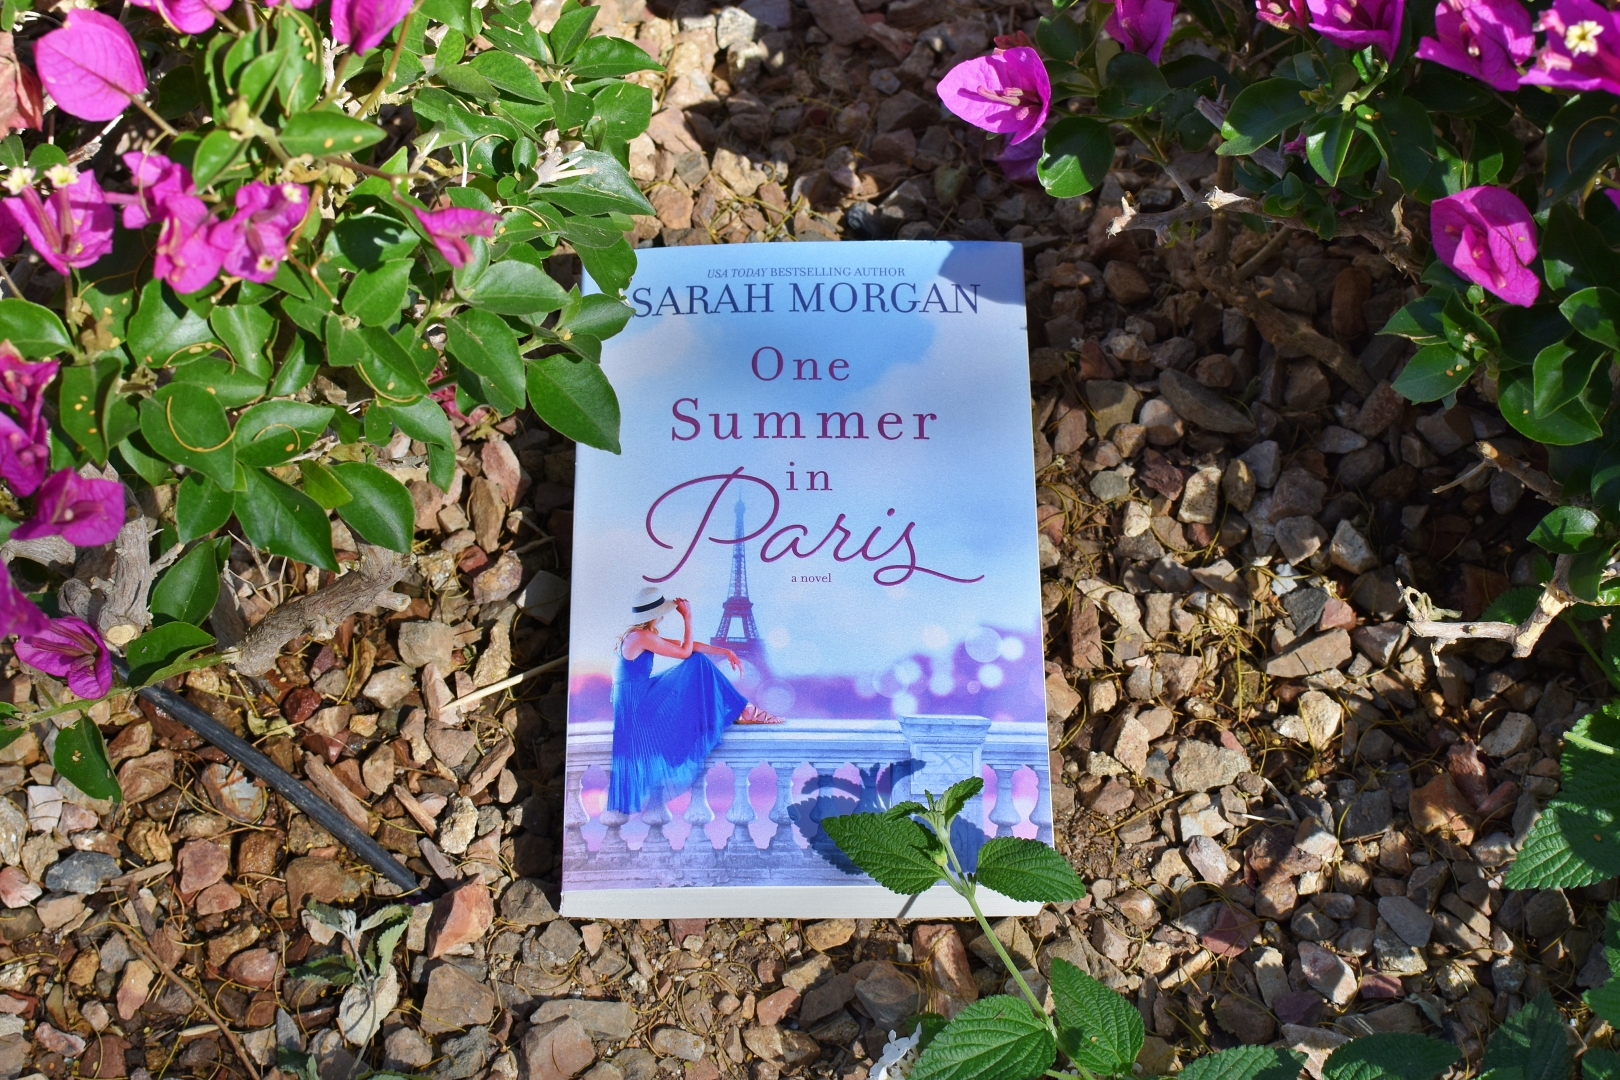 One Summer in Paris Book Cover - Review - Book Club Chat